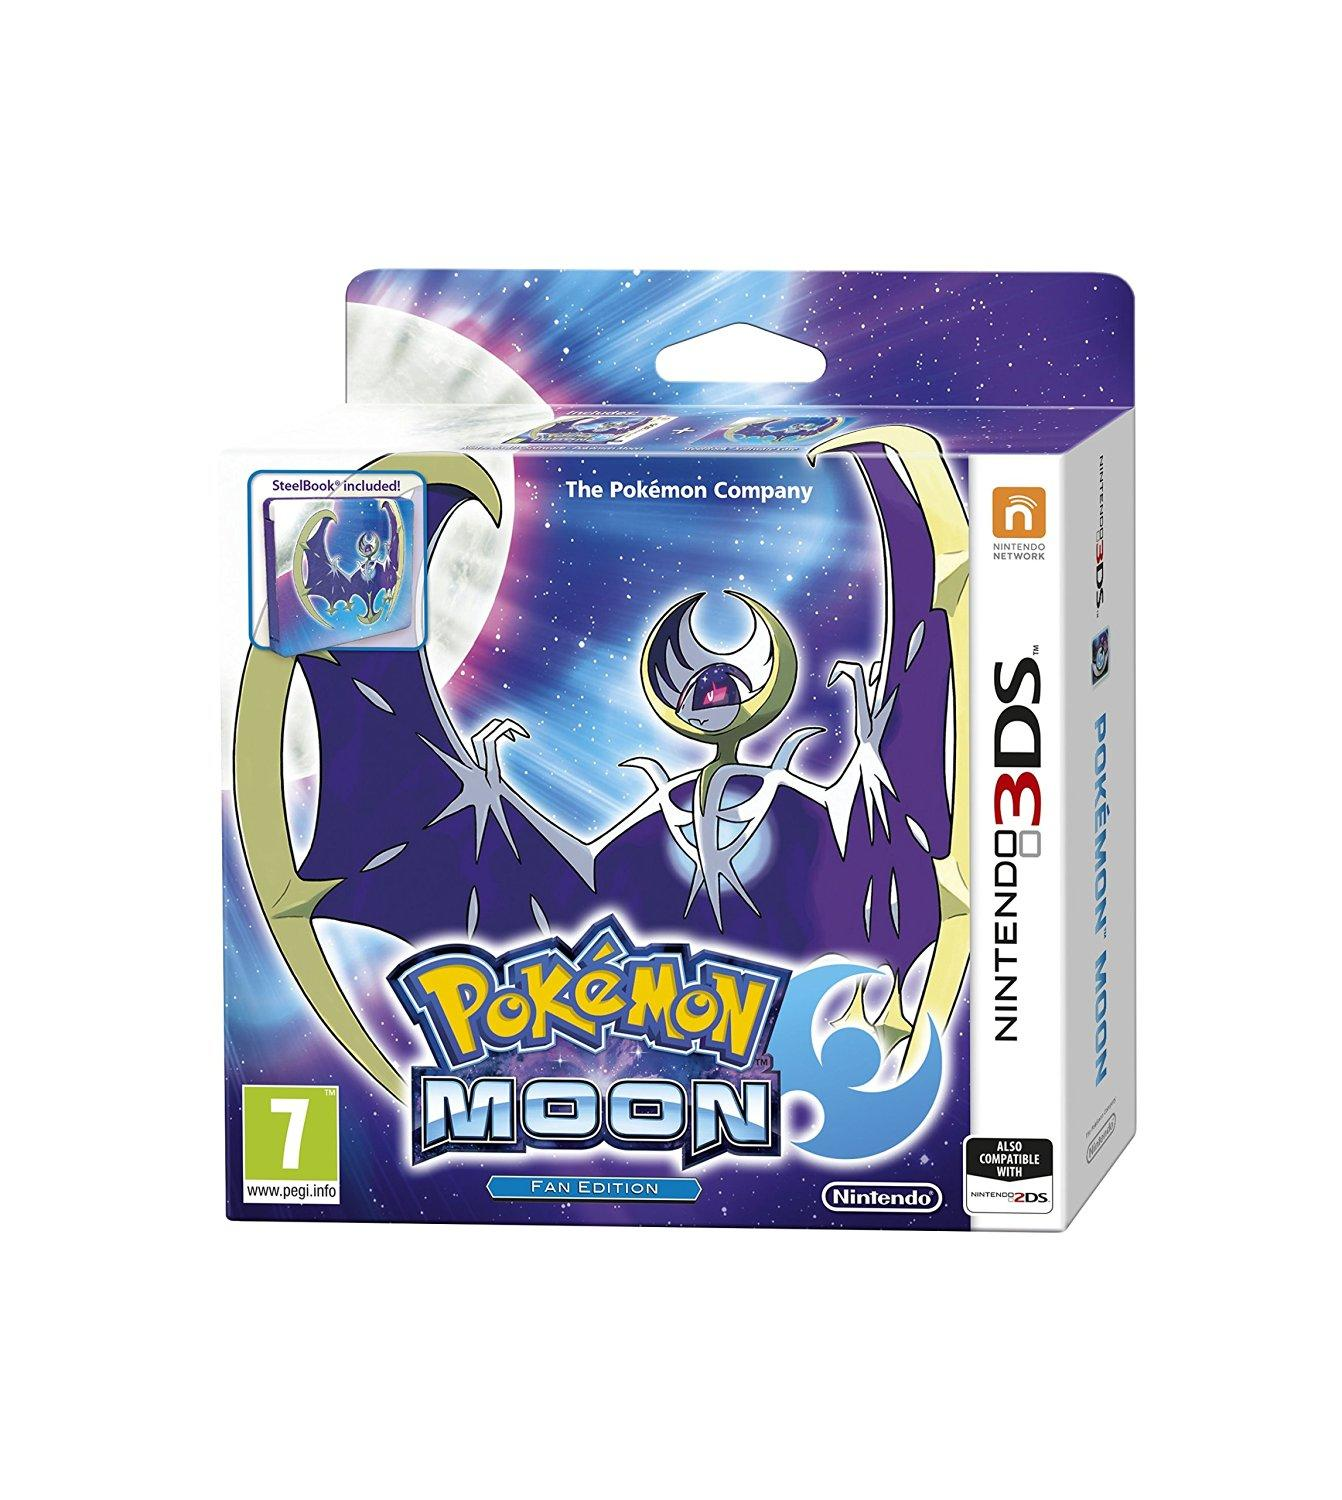 Pokémon Moon Fan Edition Nintendo 3DS